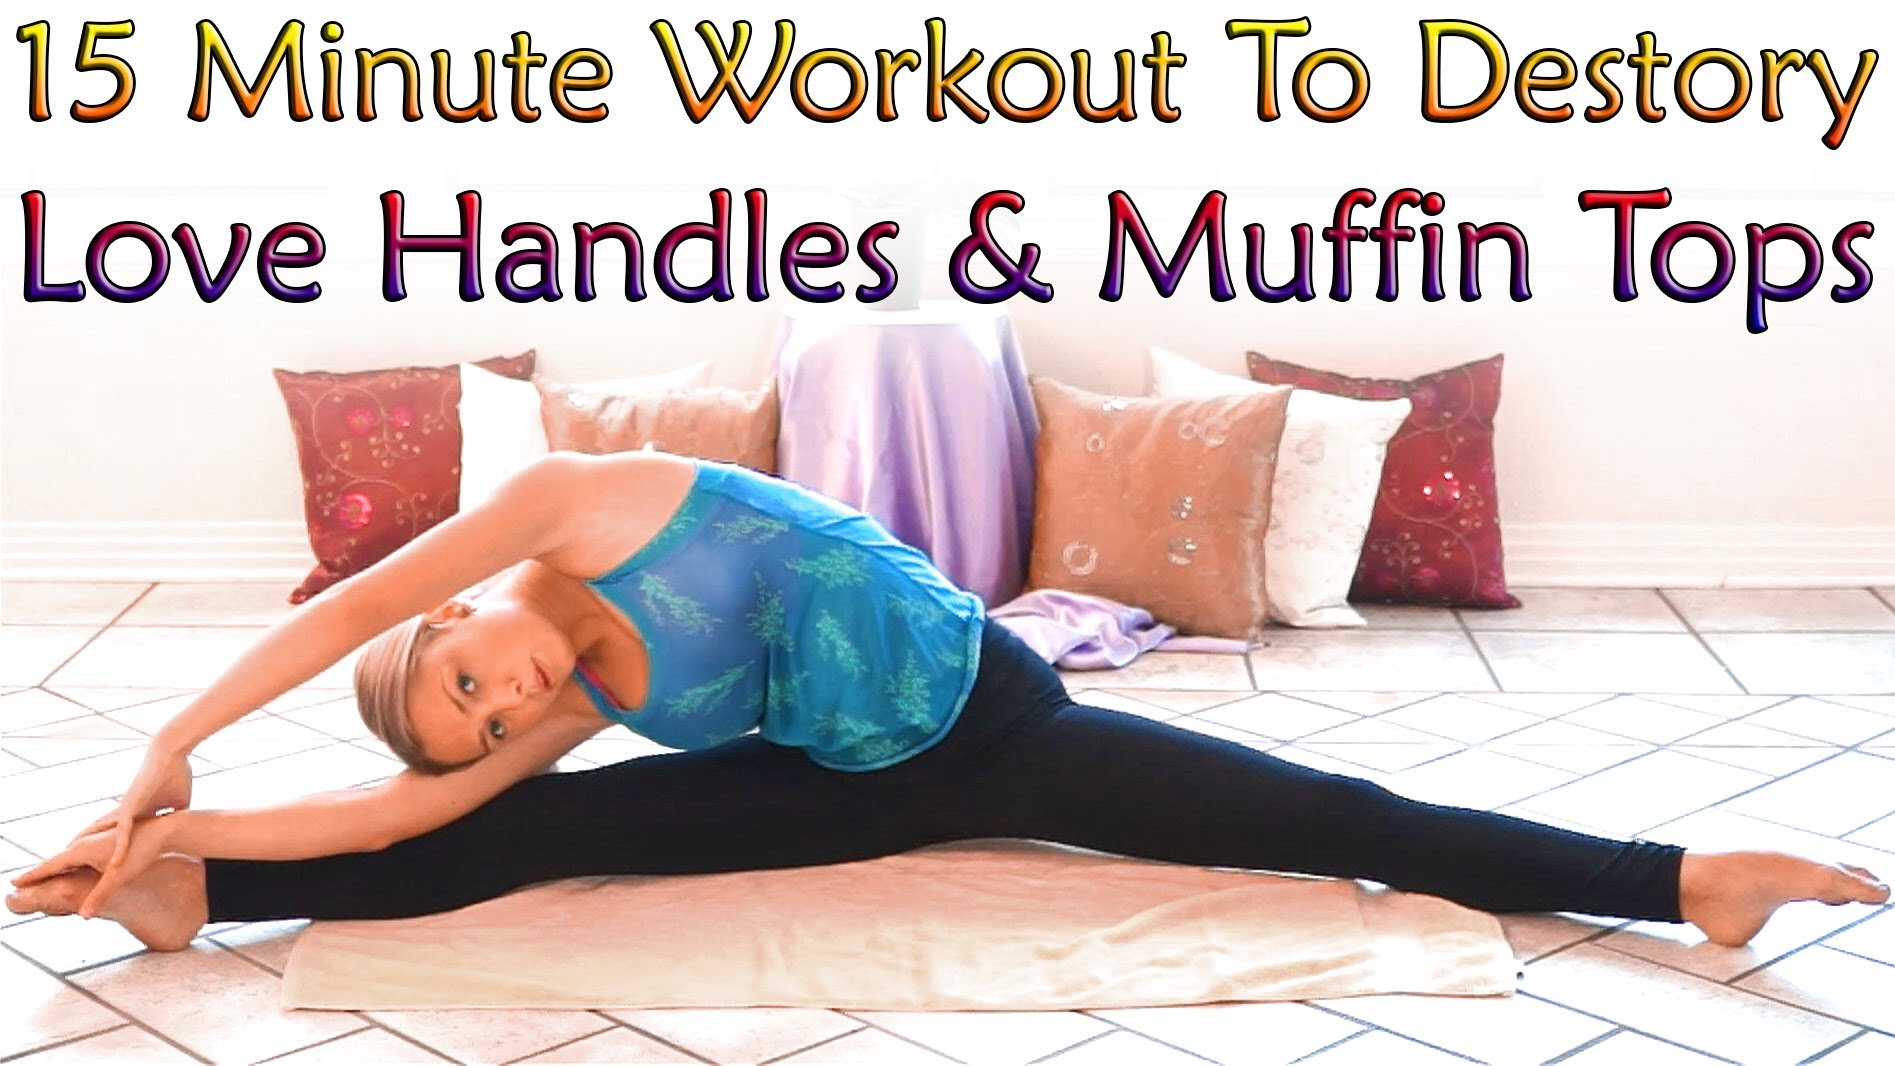 Muffin Top Meltdown & Love Handle Workout For Women, 15